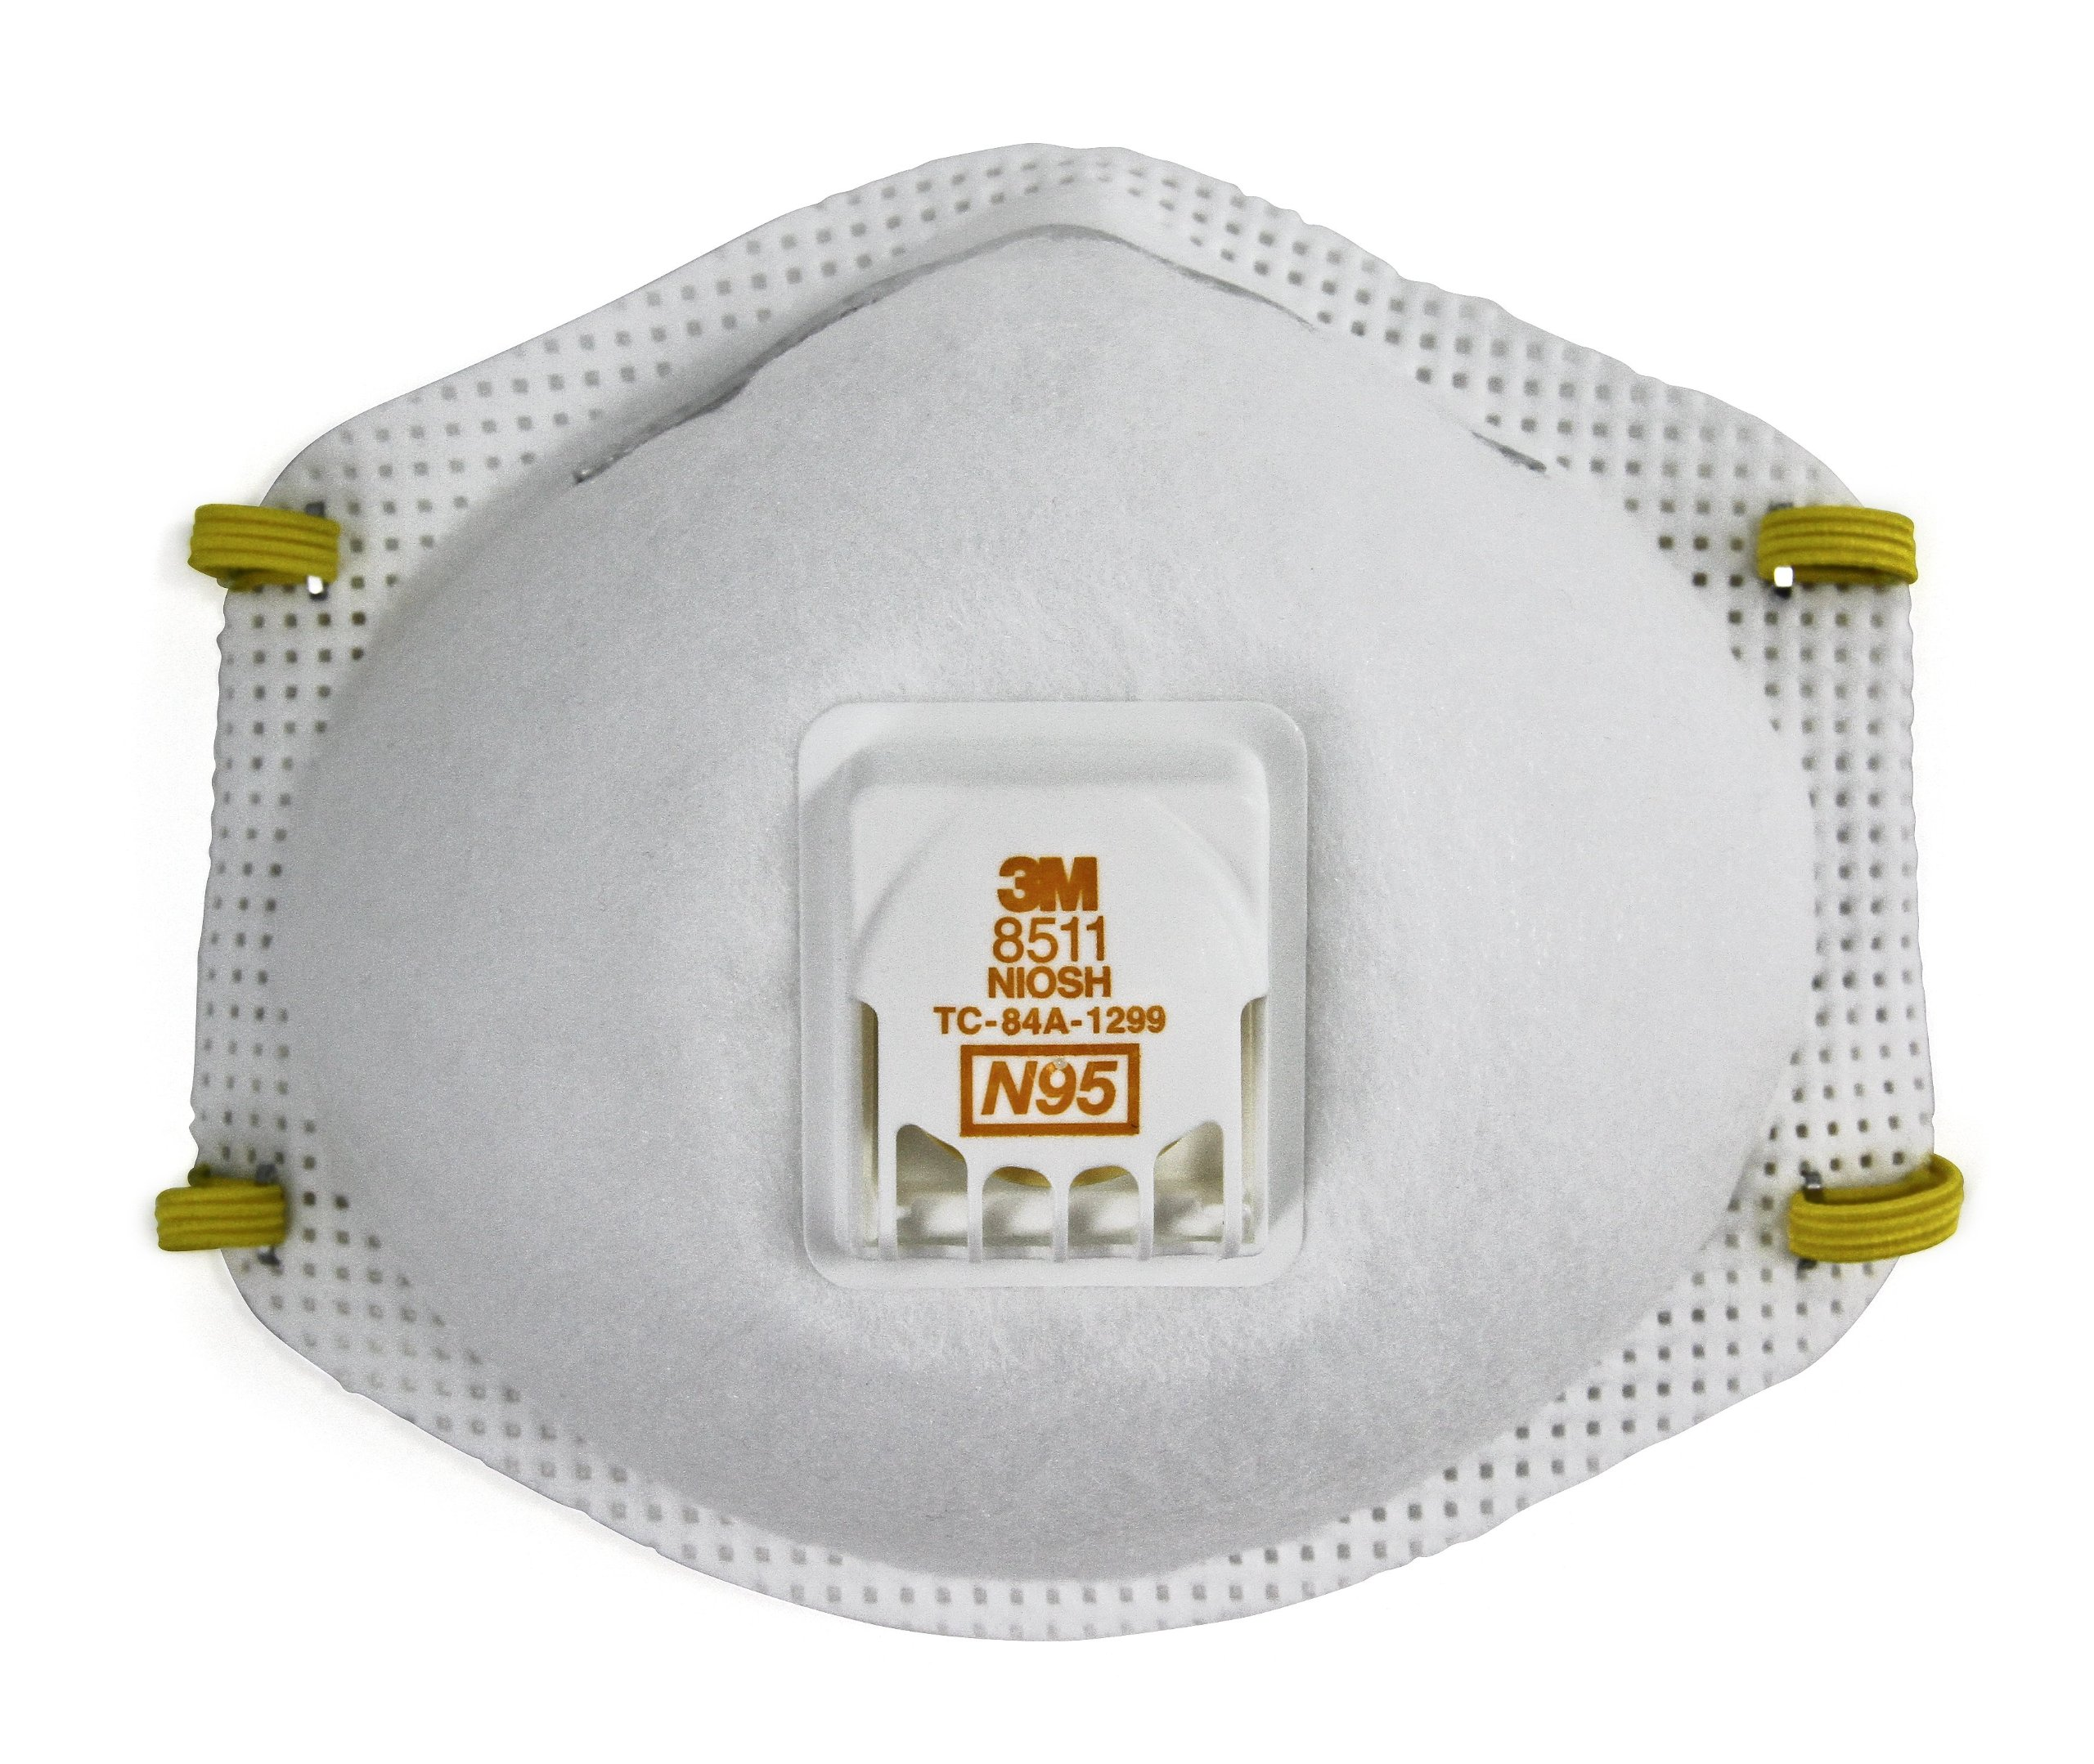 3M Particulate Respirator 8511, N95 (Pack of 80)